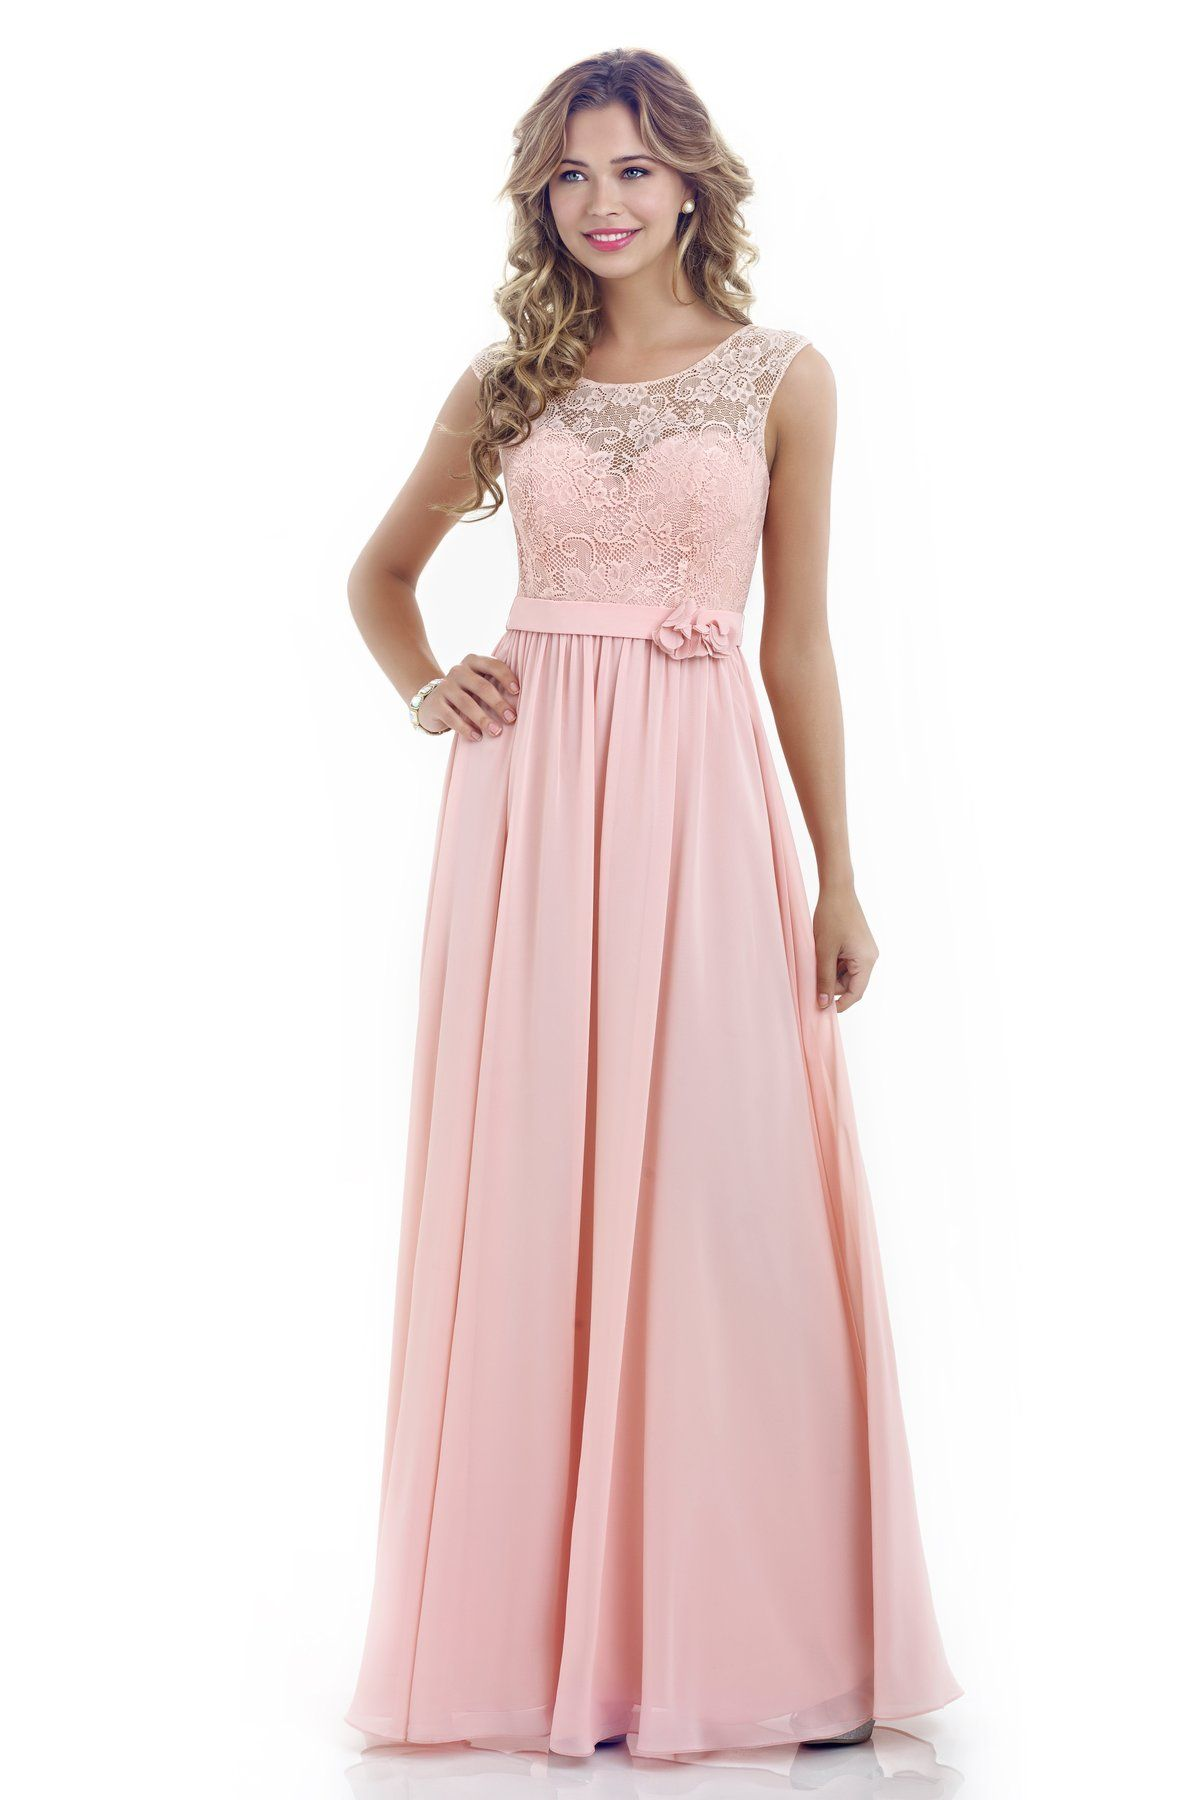 Alexia designs style 208l chiffon bridesmaid dress with for Wedding dress neckline styles